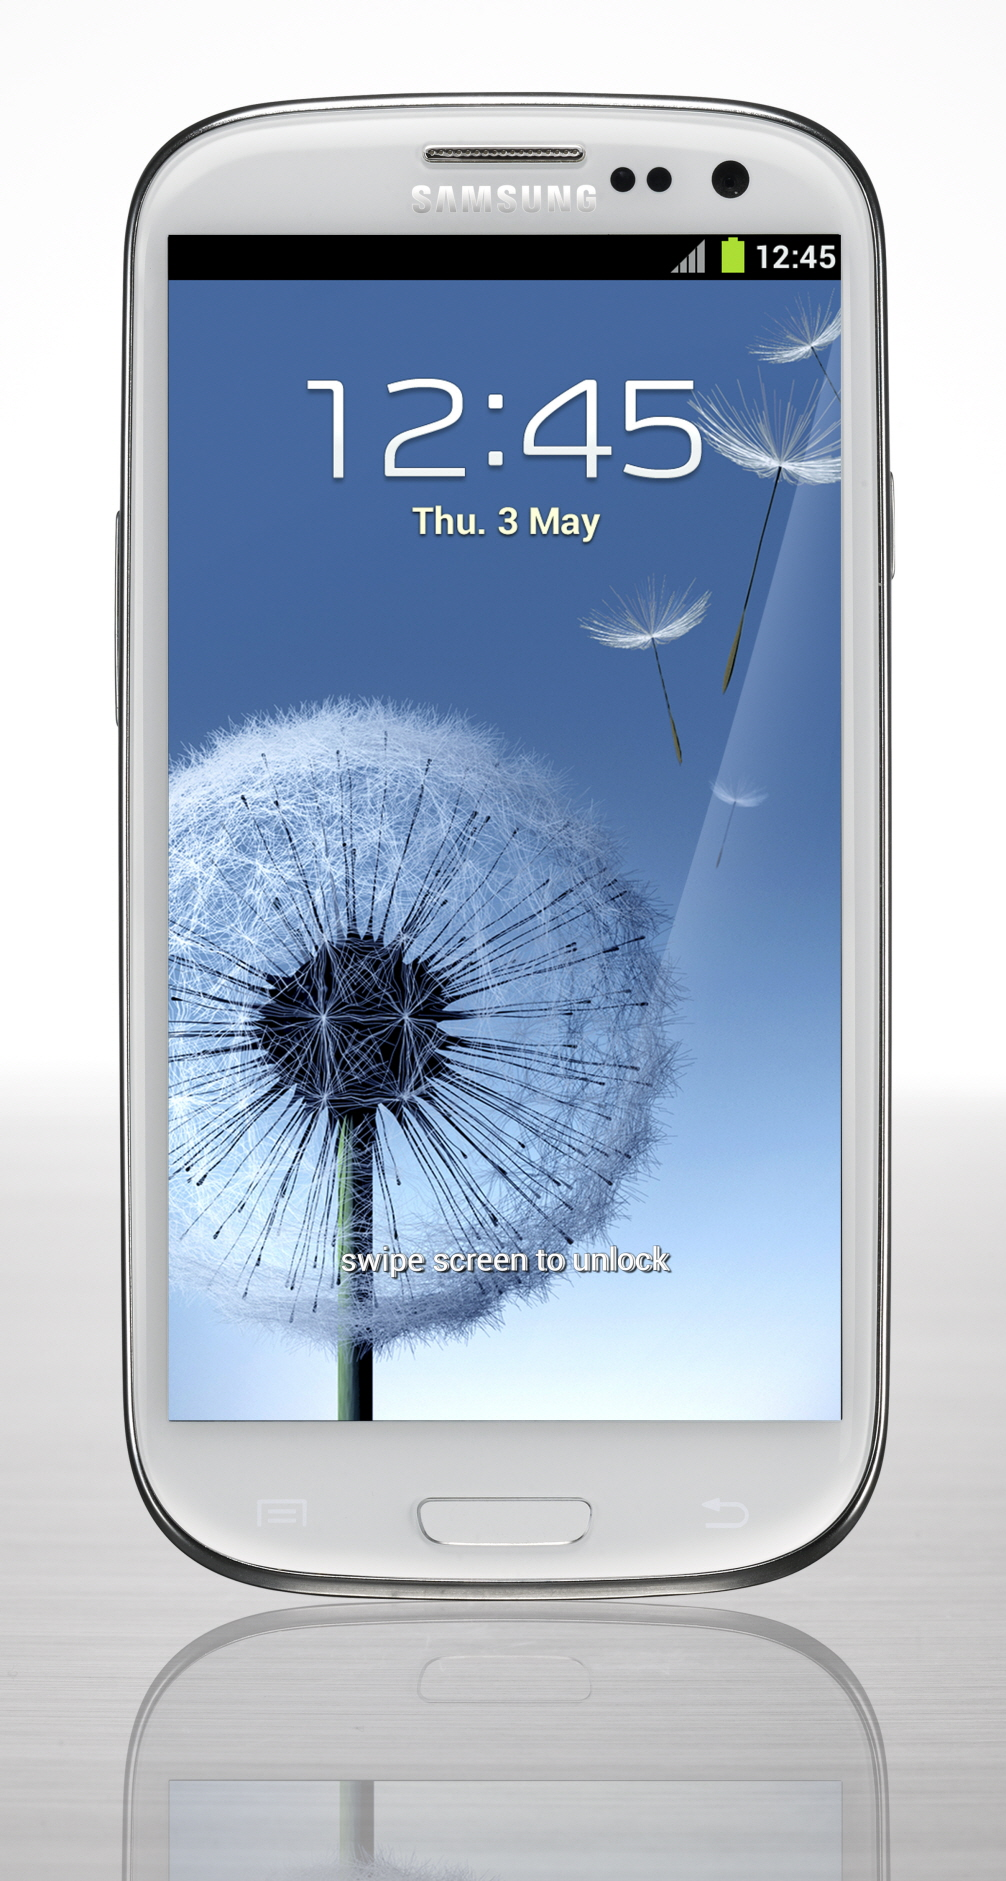 Galaxy S III to be Simultaneously Released in 28 Countries